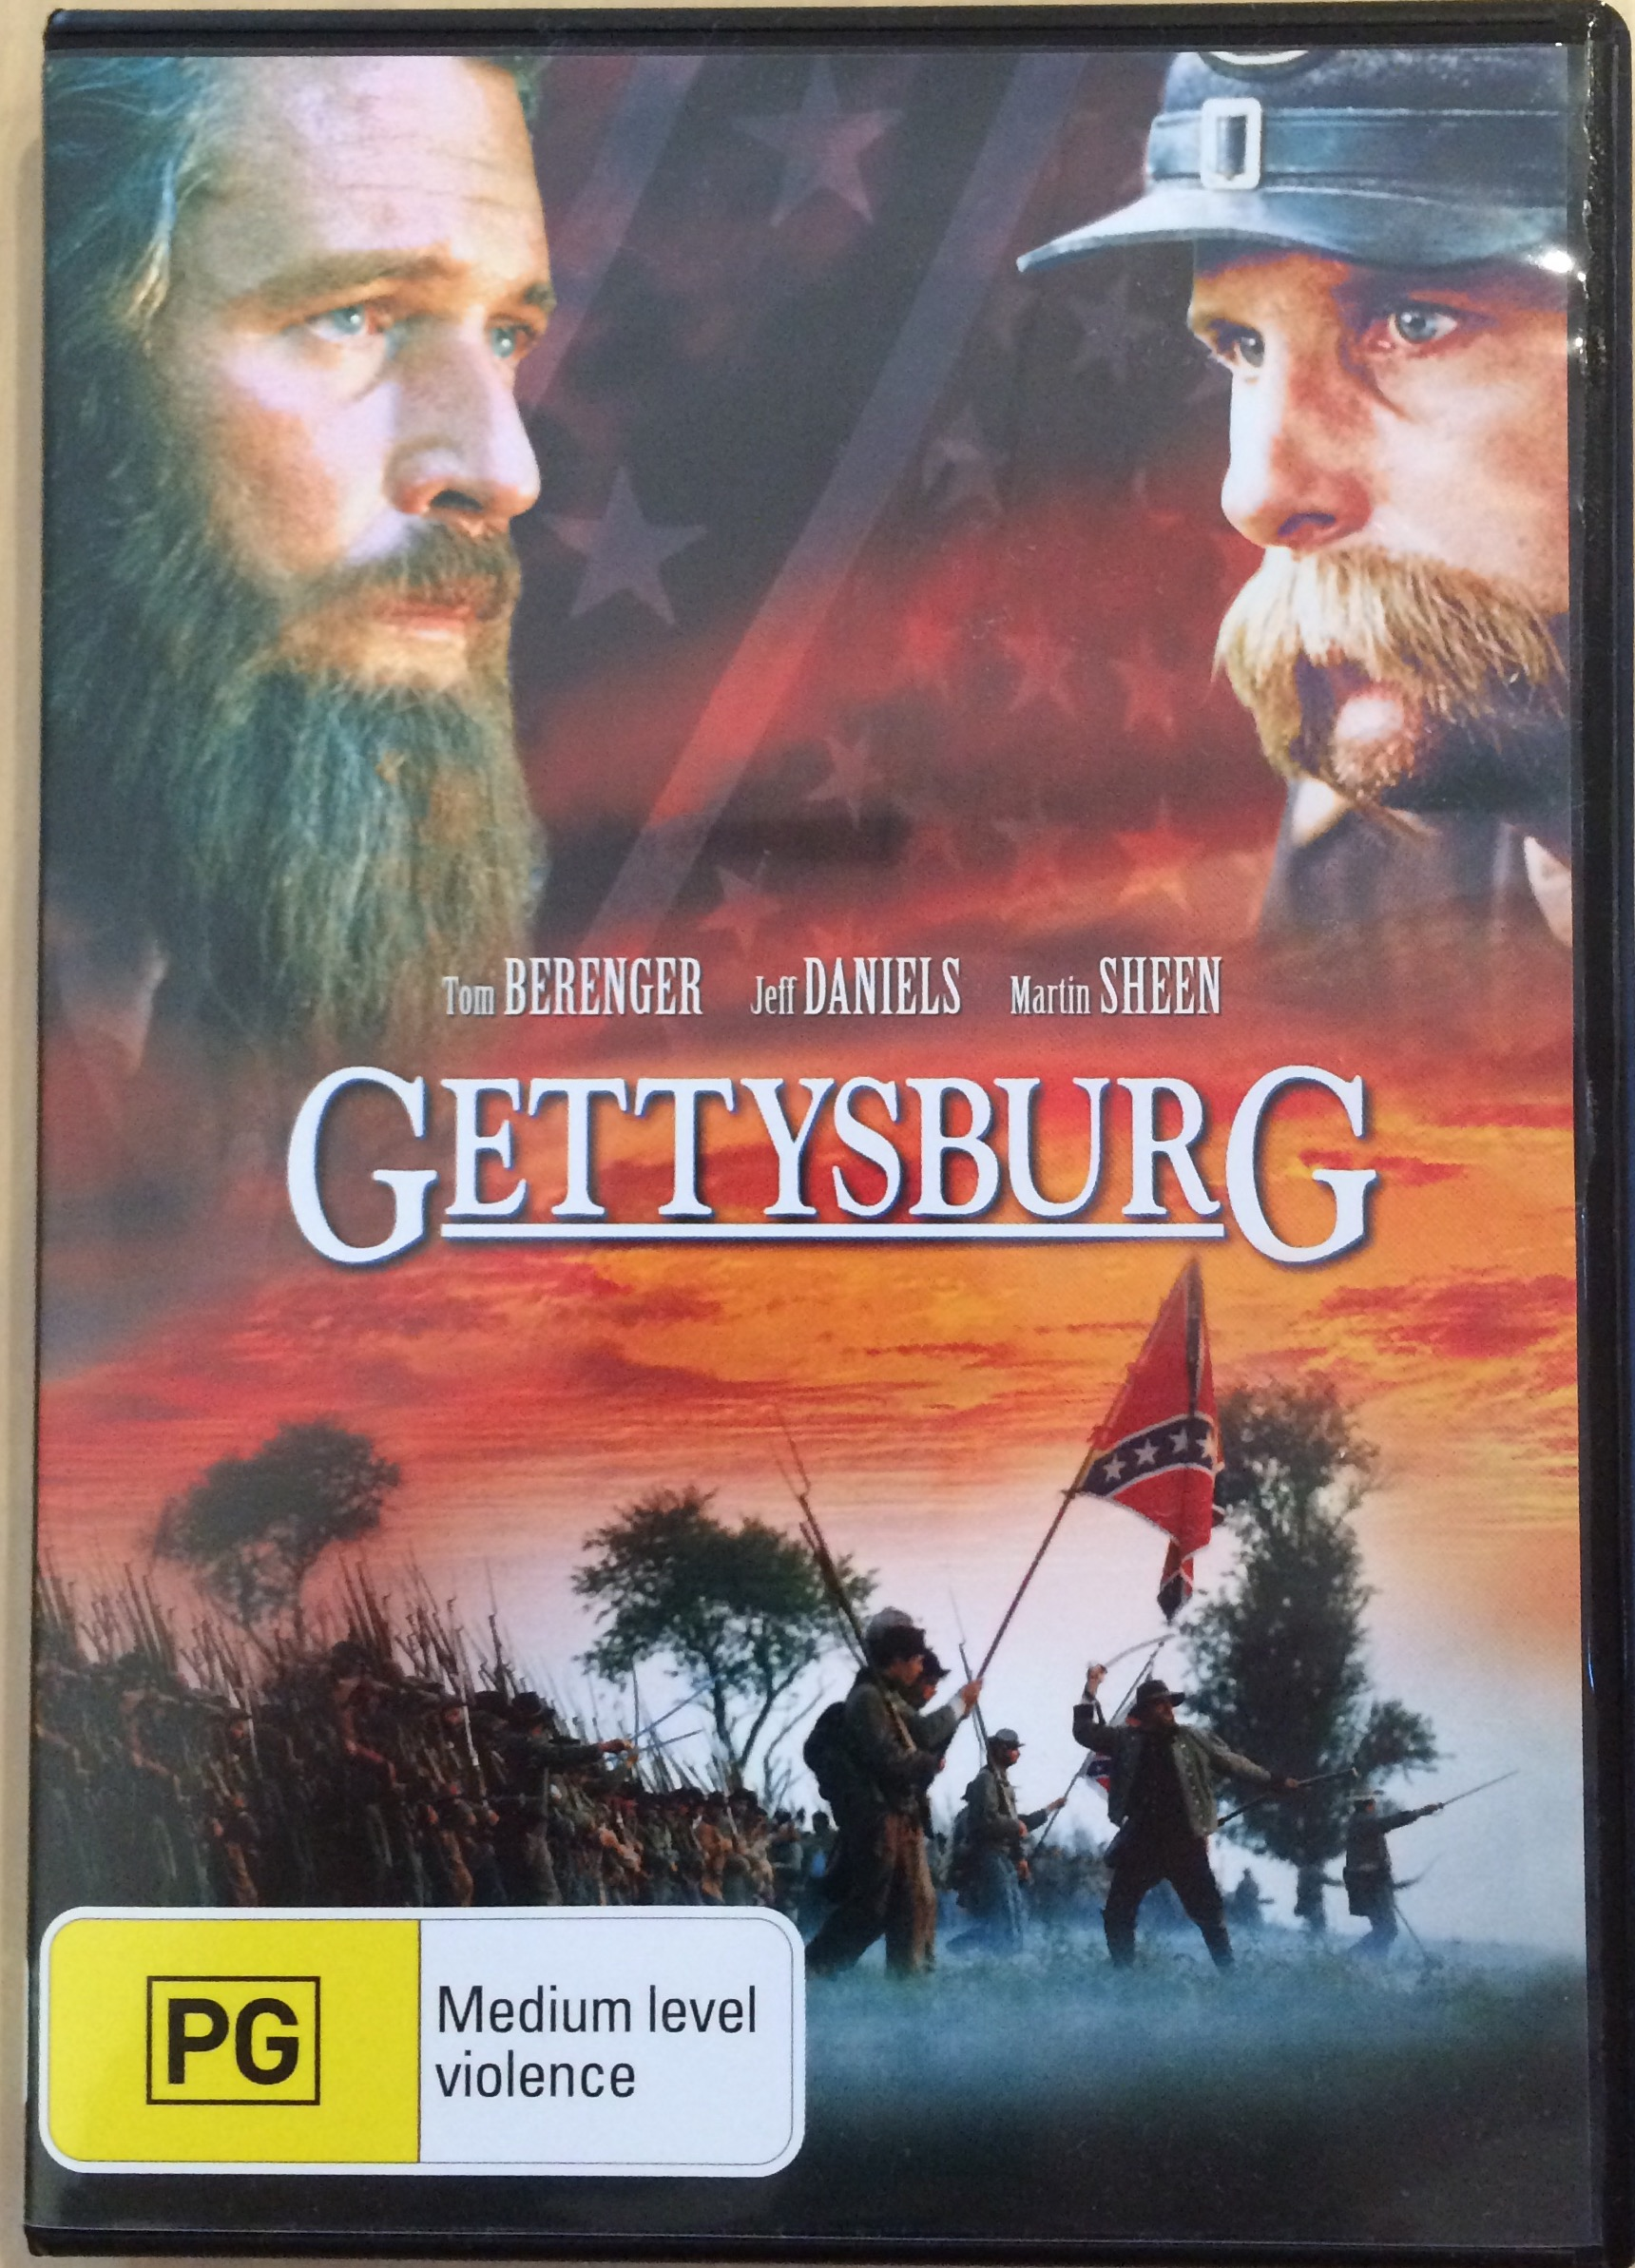 a review of the movie gettysburg Gettysburg blu -ray (director's cut see gettysburg blu-ray review warner home video has announced that on may 24 it will release on blu-ray two movies.